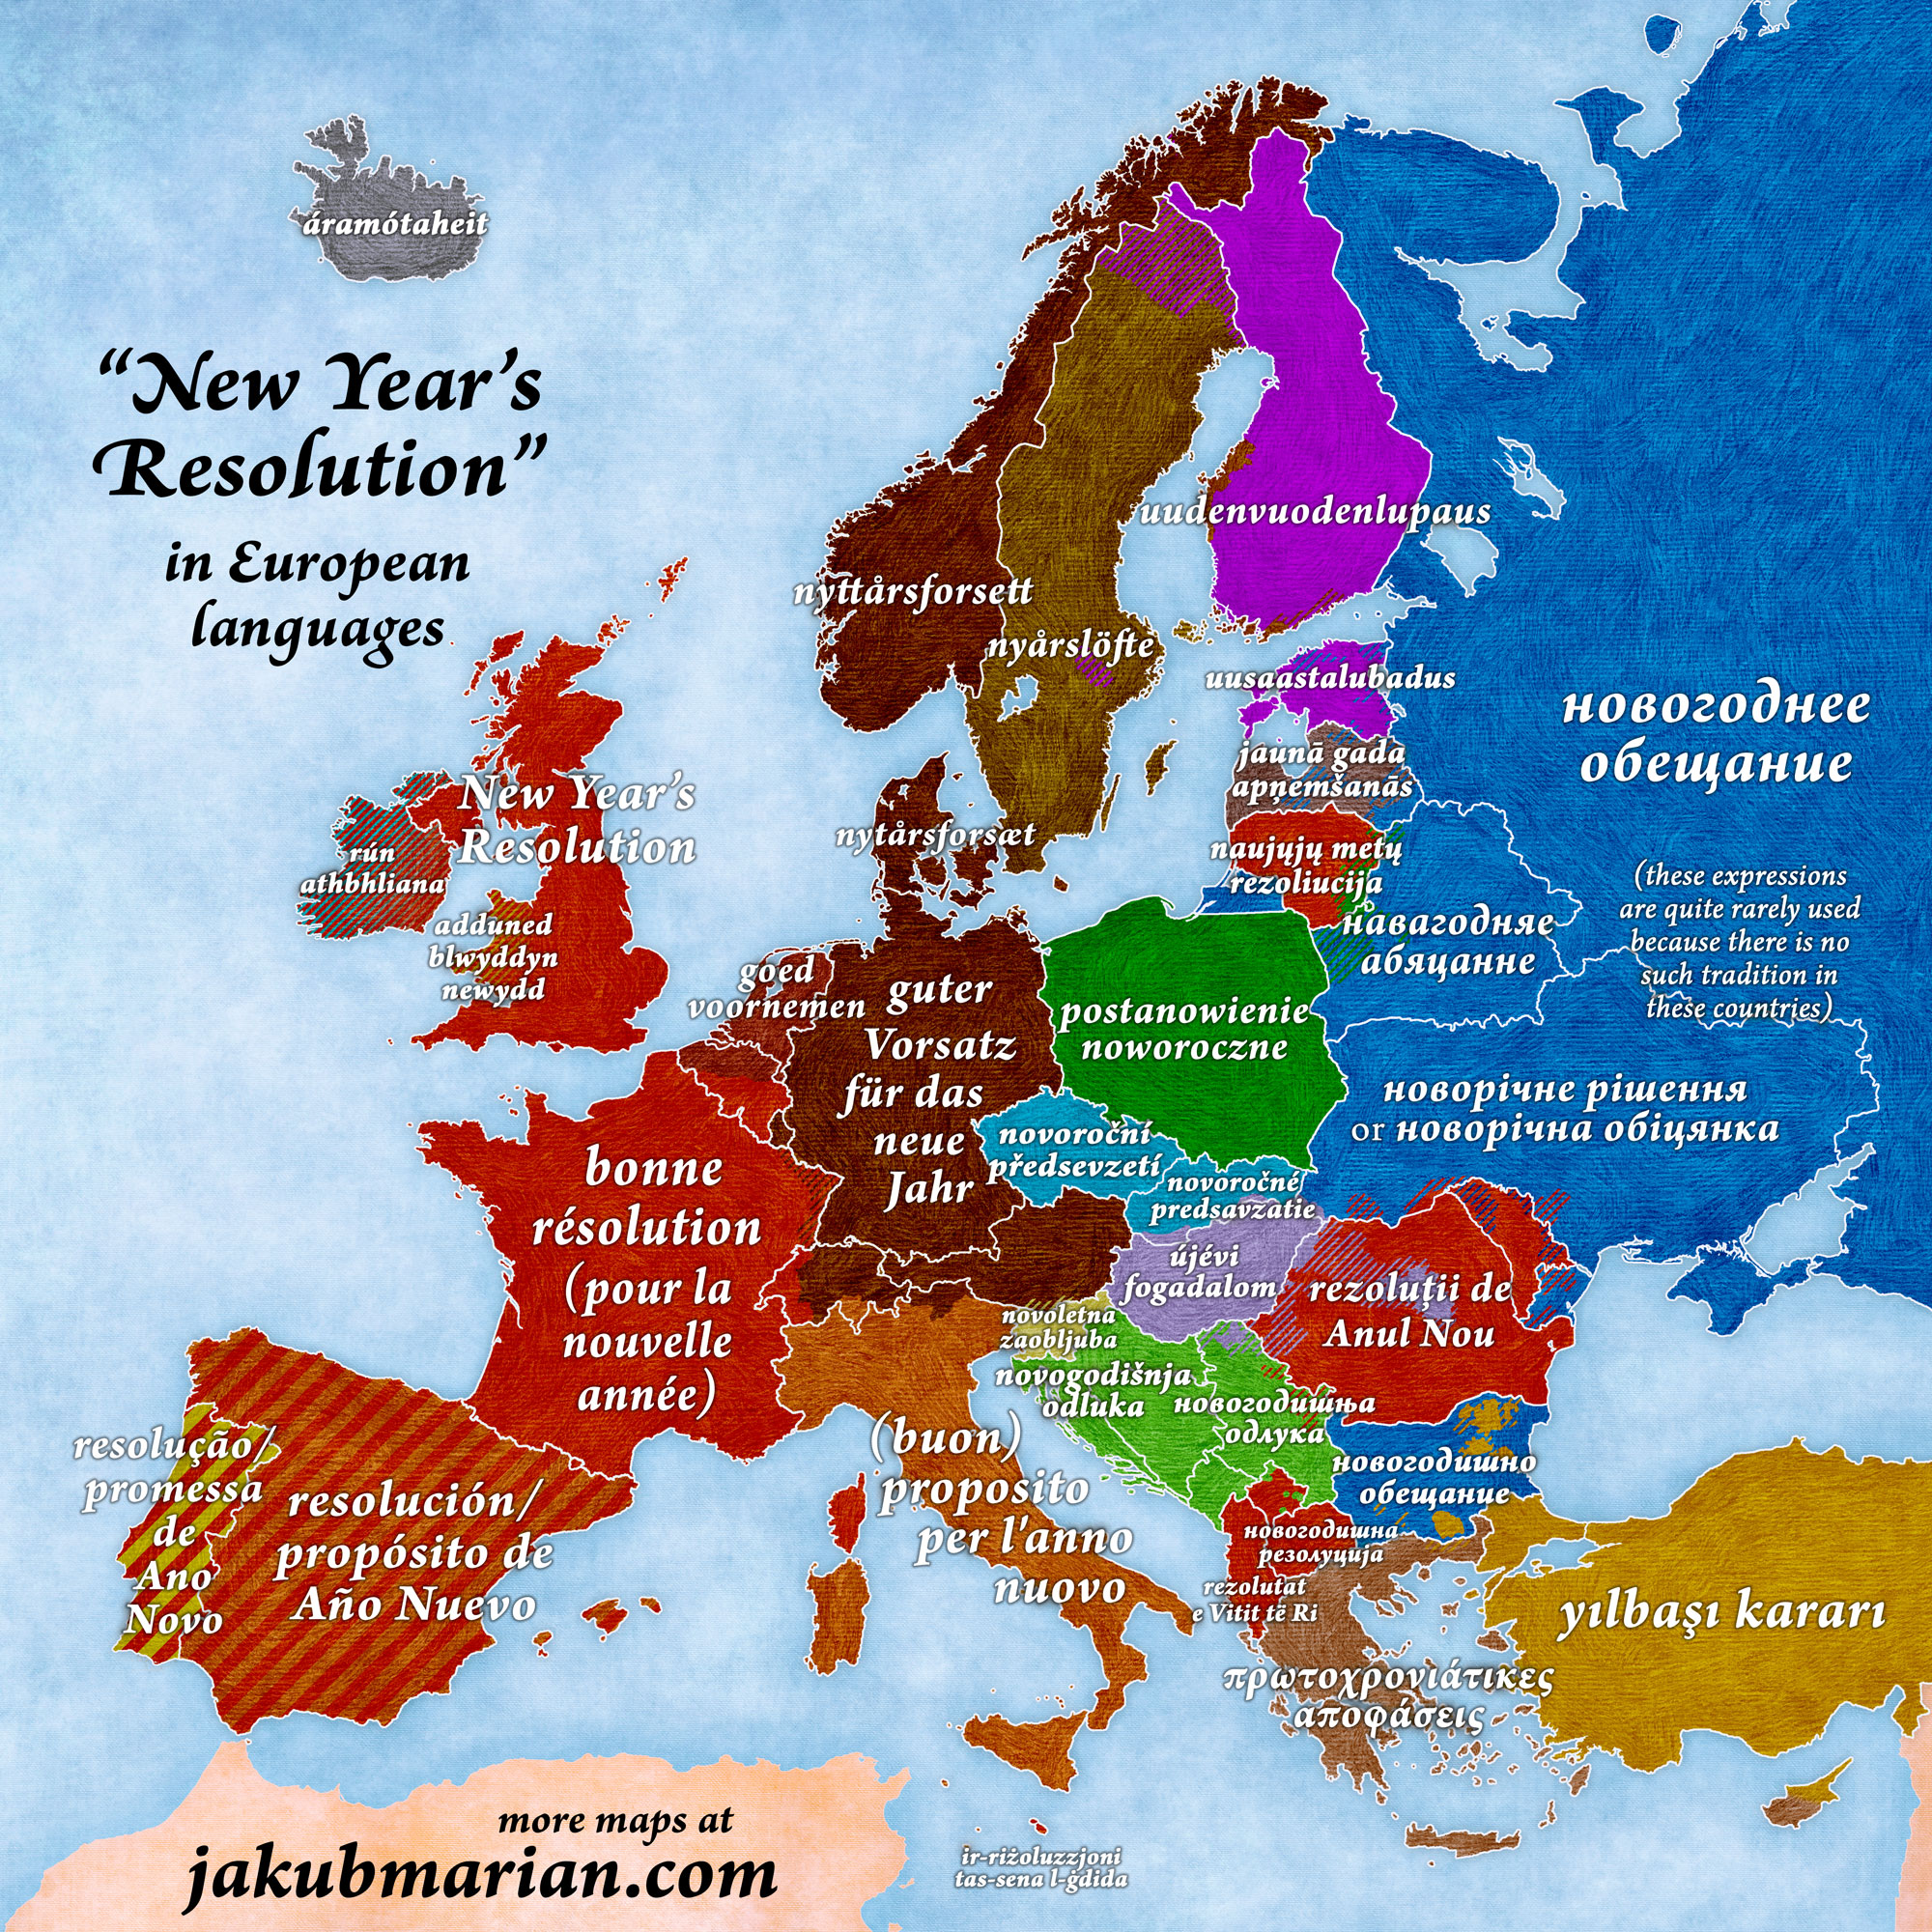 New Year's Resolution in European languages